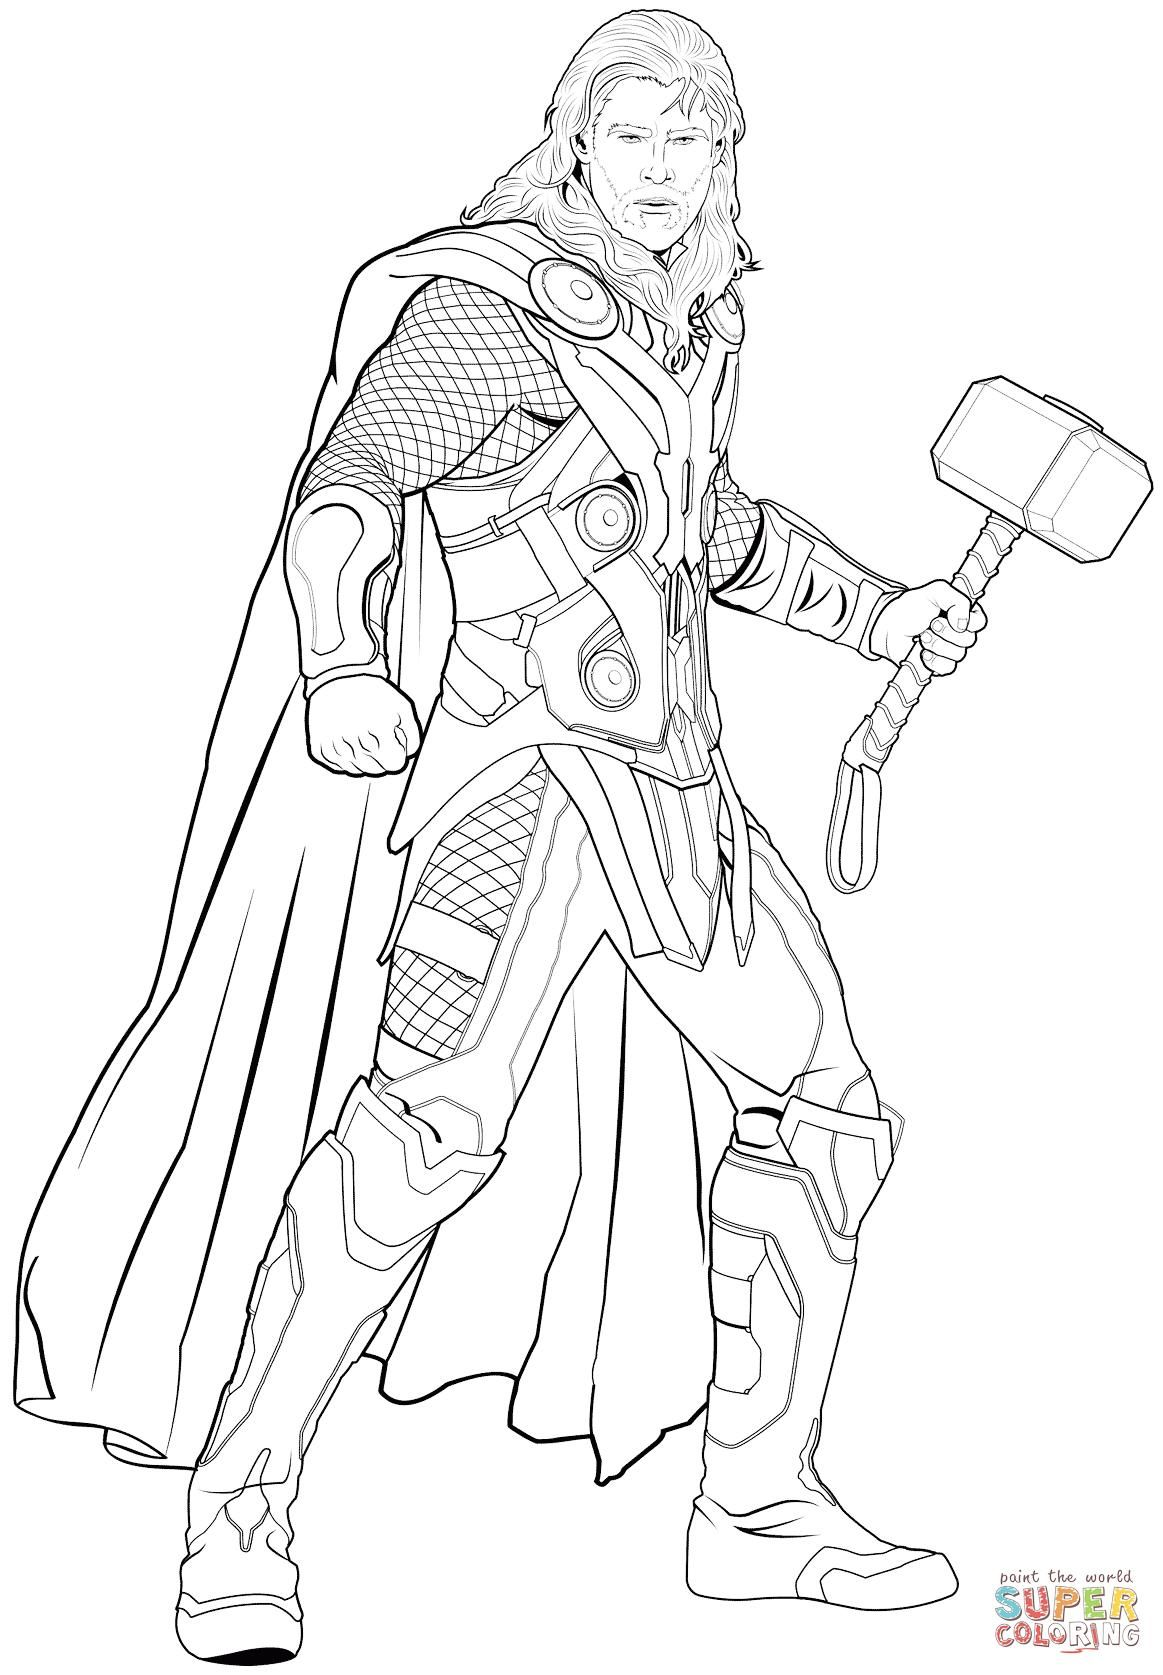 coloring thor outline thor avengers drawing at getdrawings free download thor outline coloring